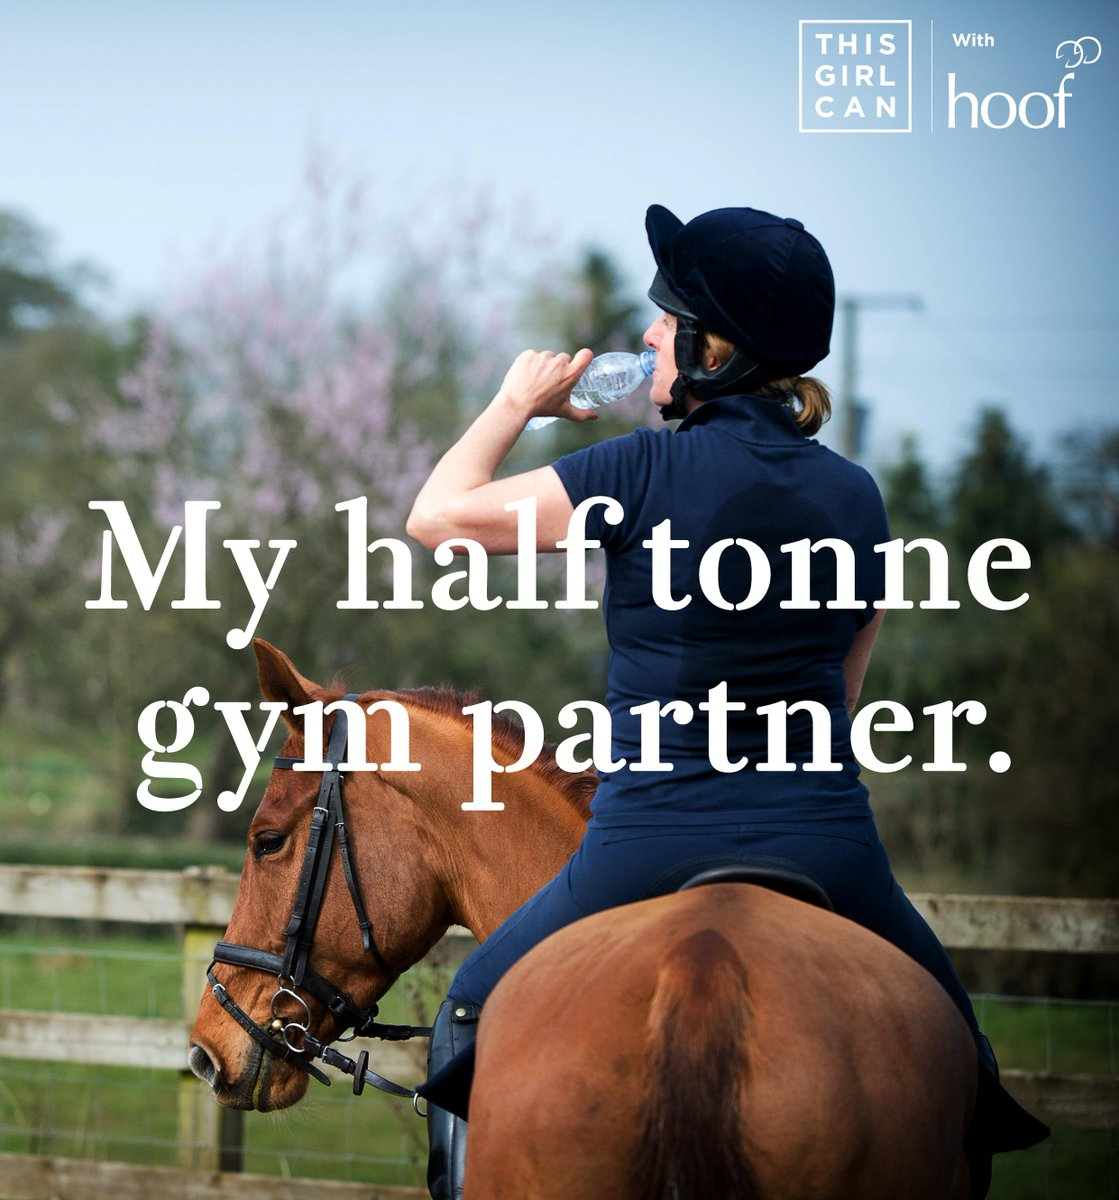 Like & share if your perfect gym partner has four legs not two #ThisGirlCan #mysport #WSW2015 http://t.co/kb90TNTXQB http://t.co/i1in8ZRs6l